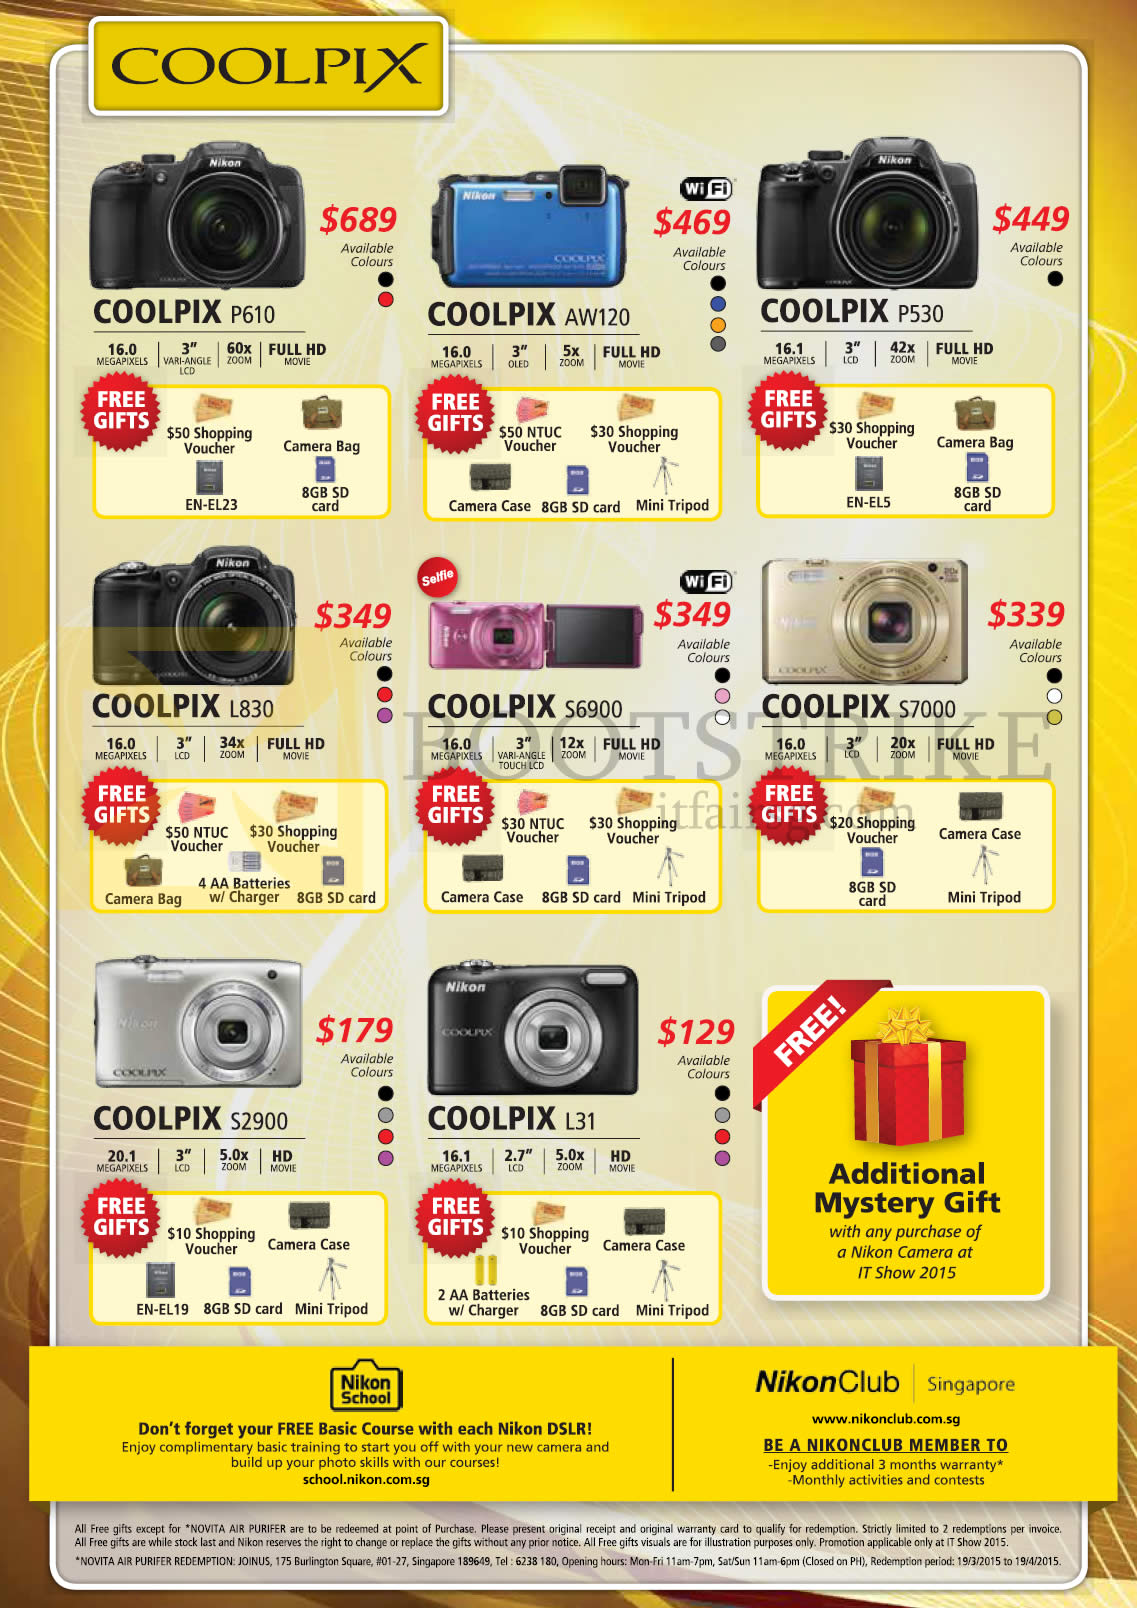 Nikon Digital Cameras Coolpix P610, AW120, P530, L830, S6900, S7000, S2900, L31, Mystery Gift